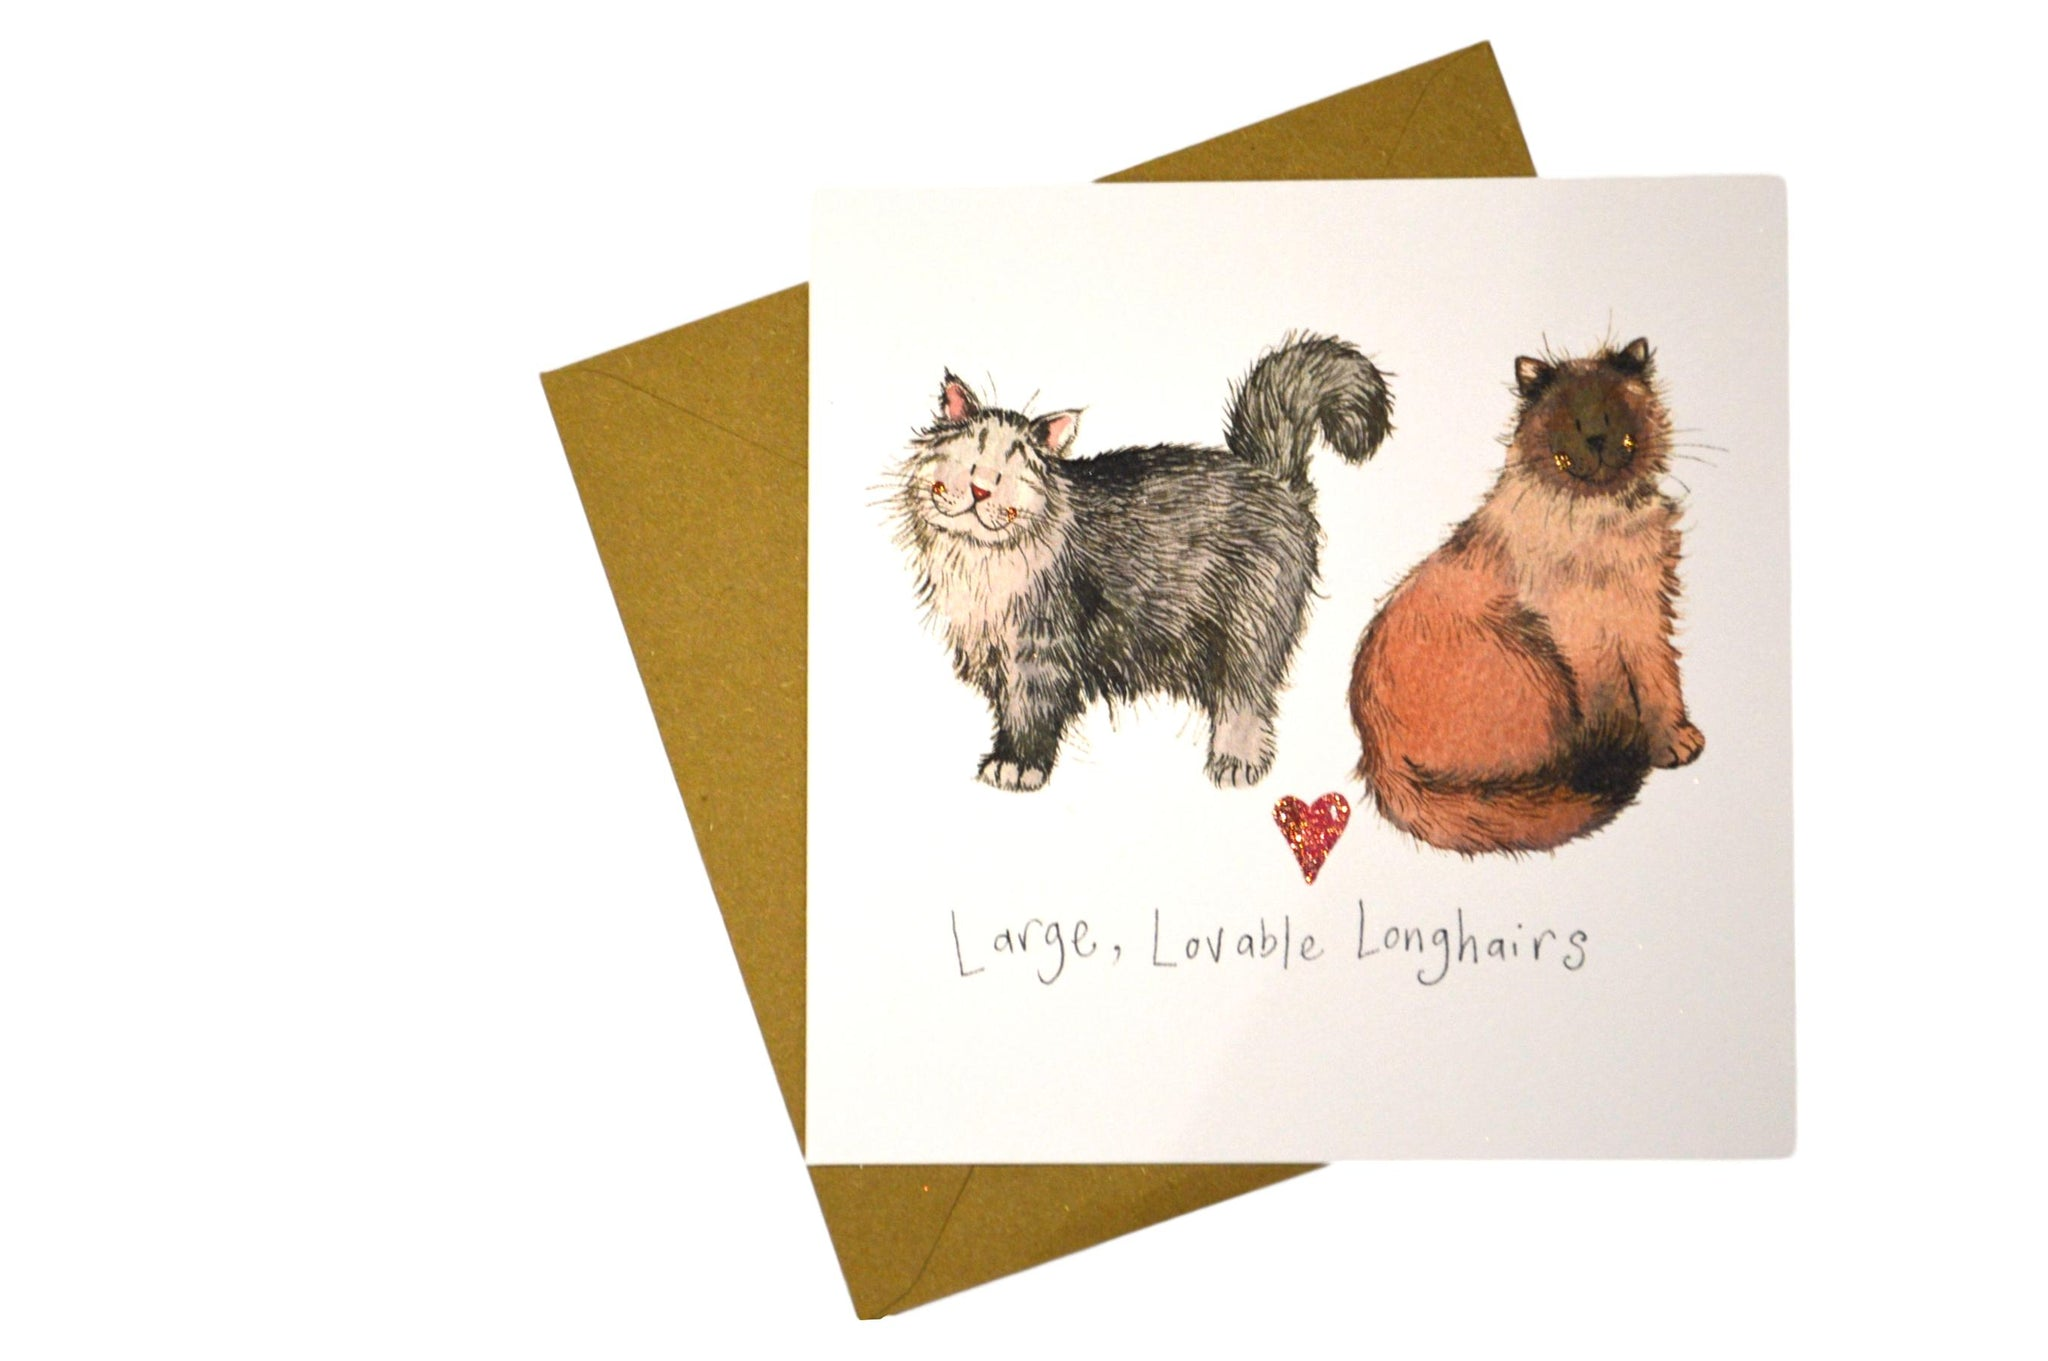 Large, Lovable Longhairs Greeting Card